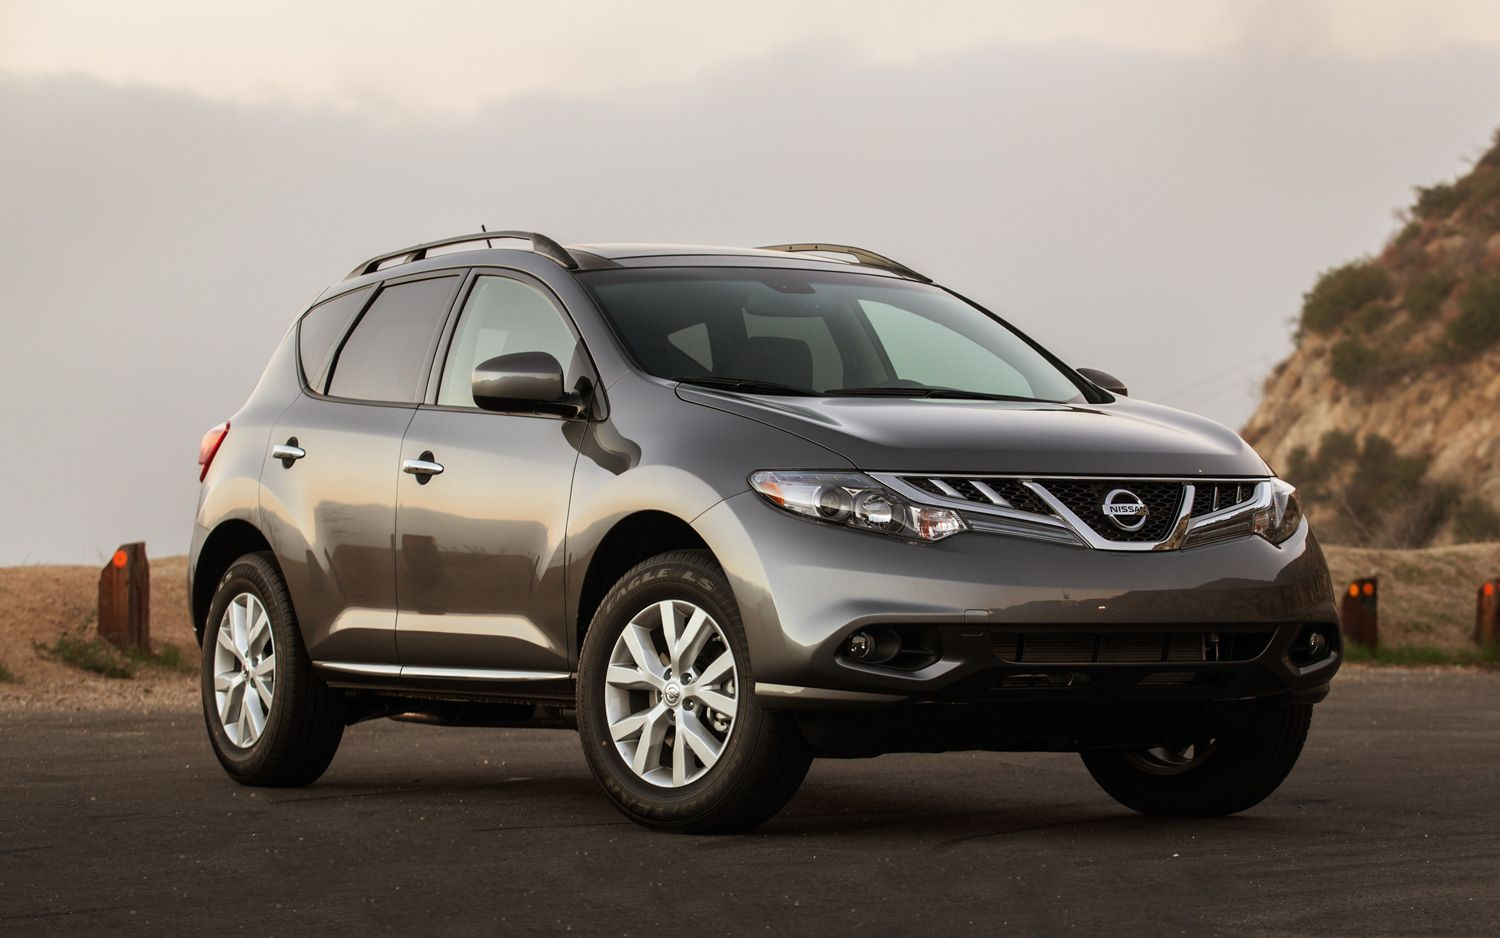 2013 Nissan Murano Prices Announced With Images Nissan Murano Nissan Nissan Rogue